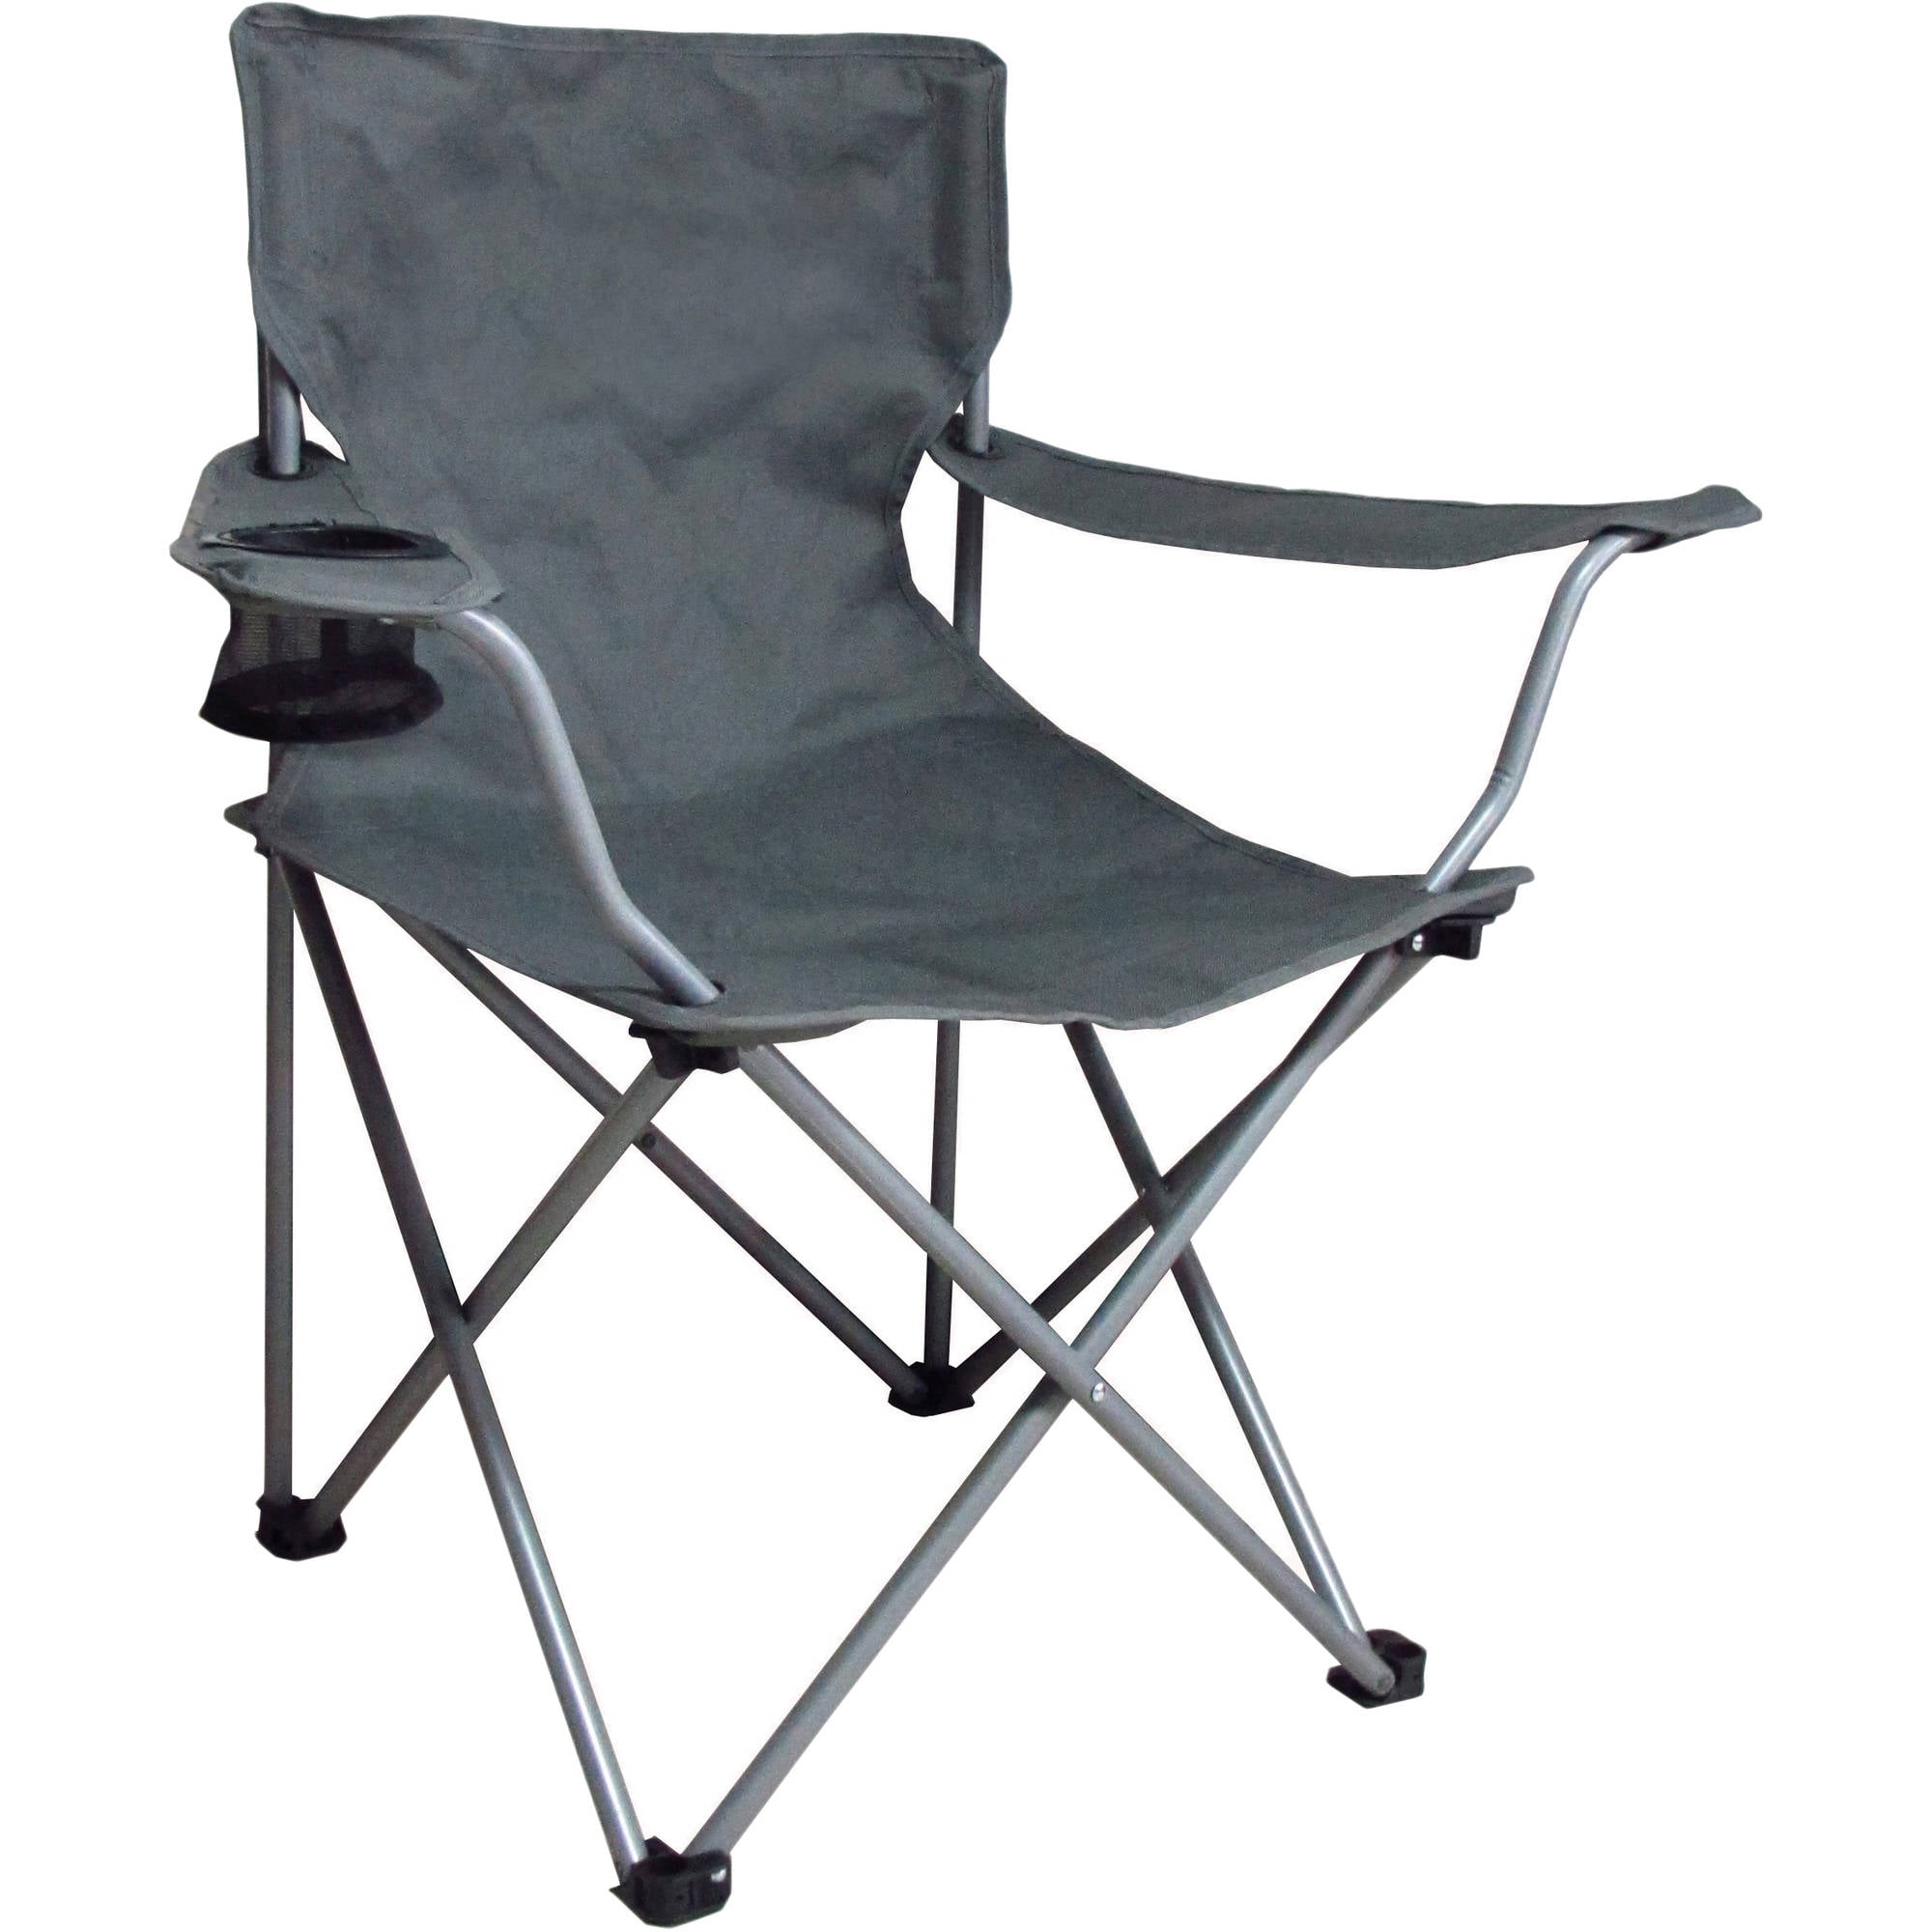 Camping chairs with umbrella - Camping Chairs With Umbrella 53